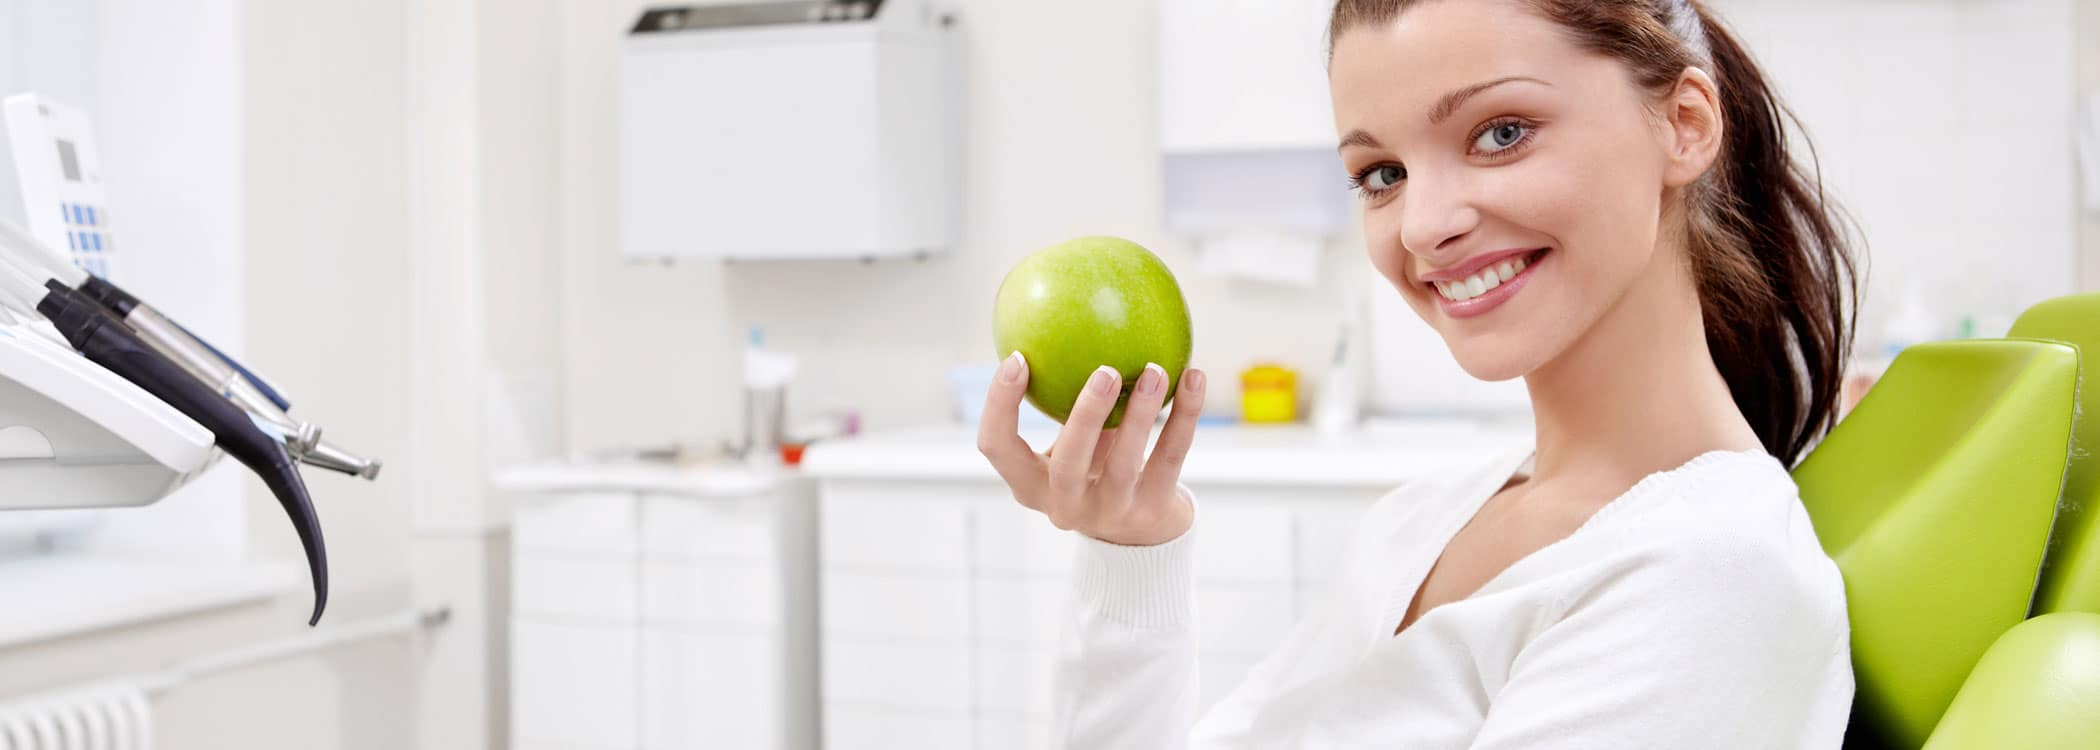 Dental patient smiling and holding a green apple.